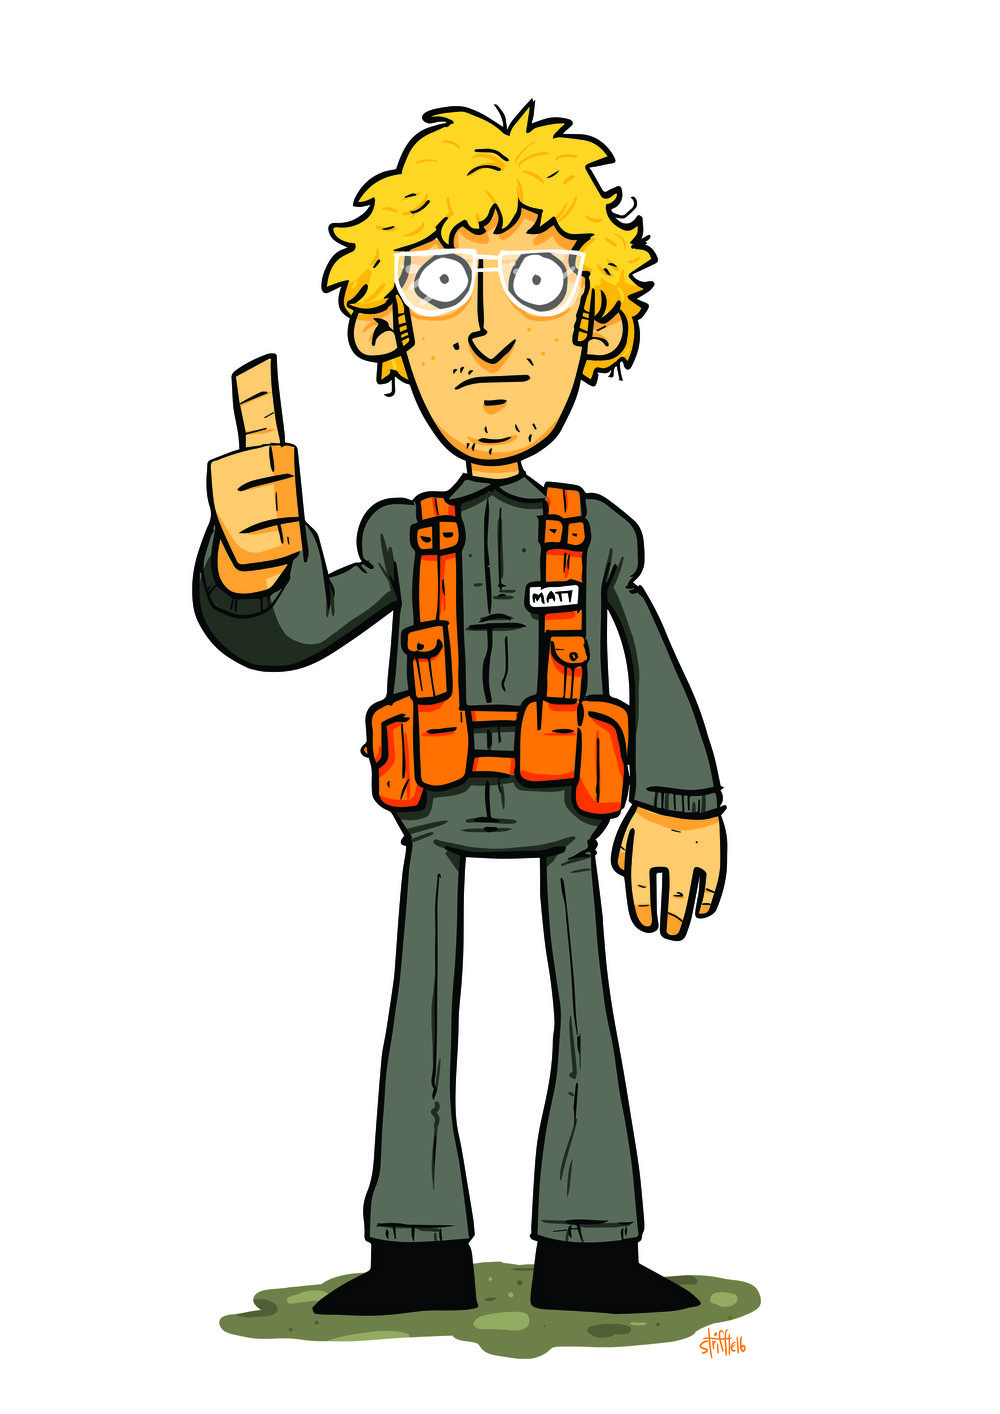 Matt the Radar Technician